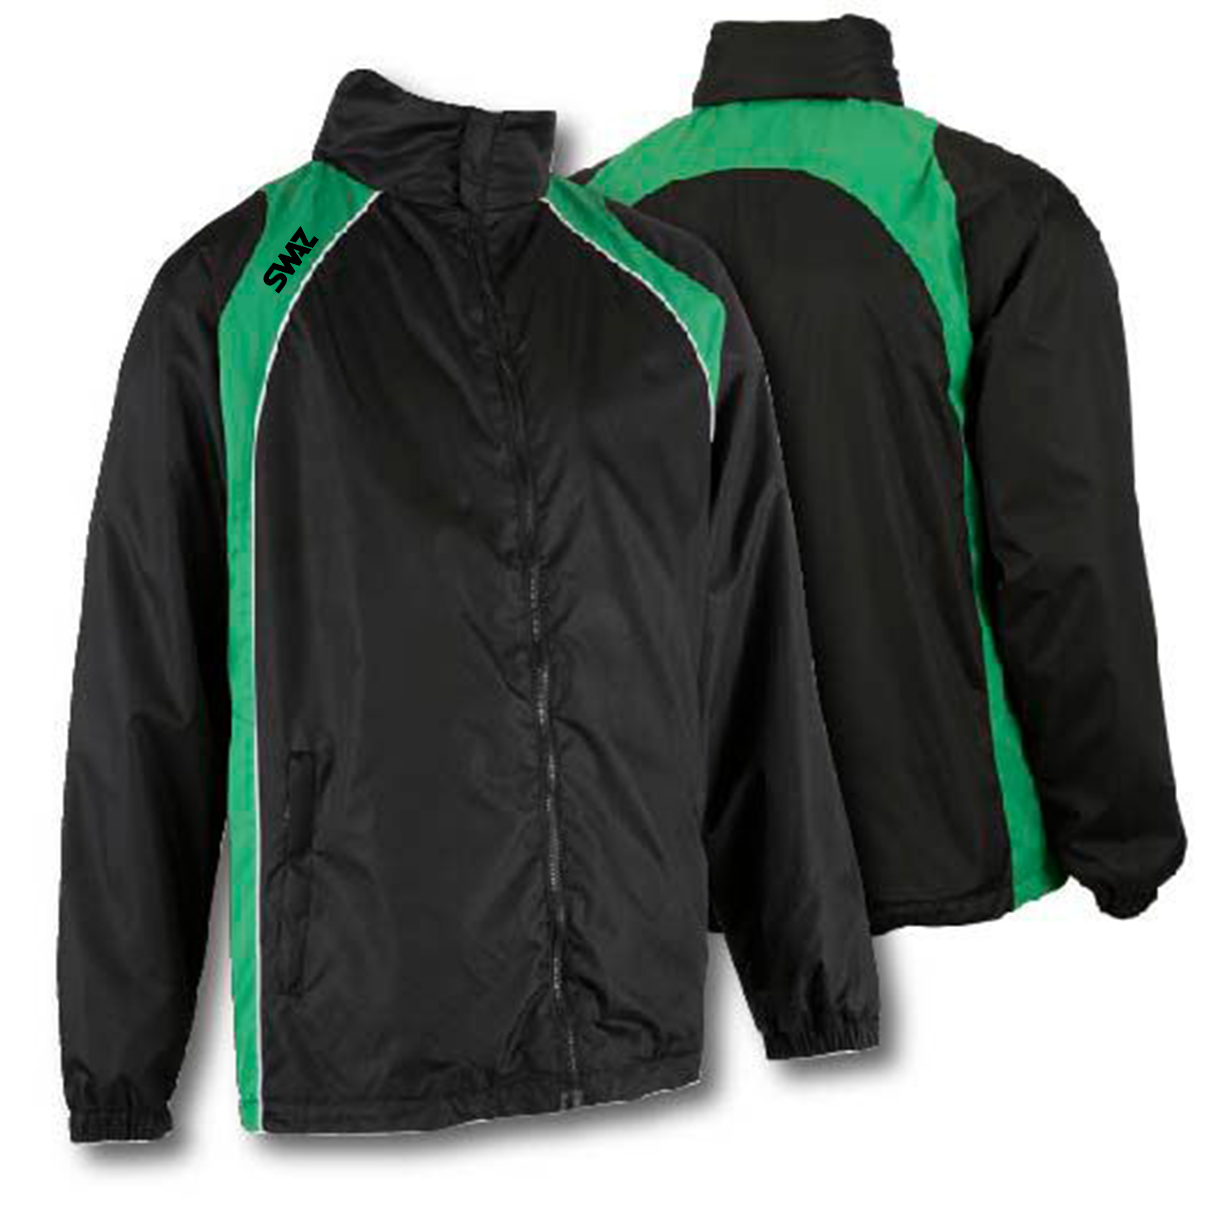 15 SWAZ Showerproof Jackets – Black/Green